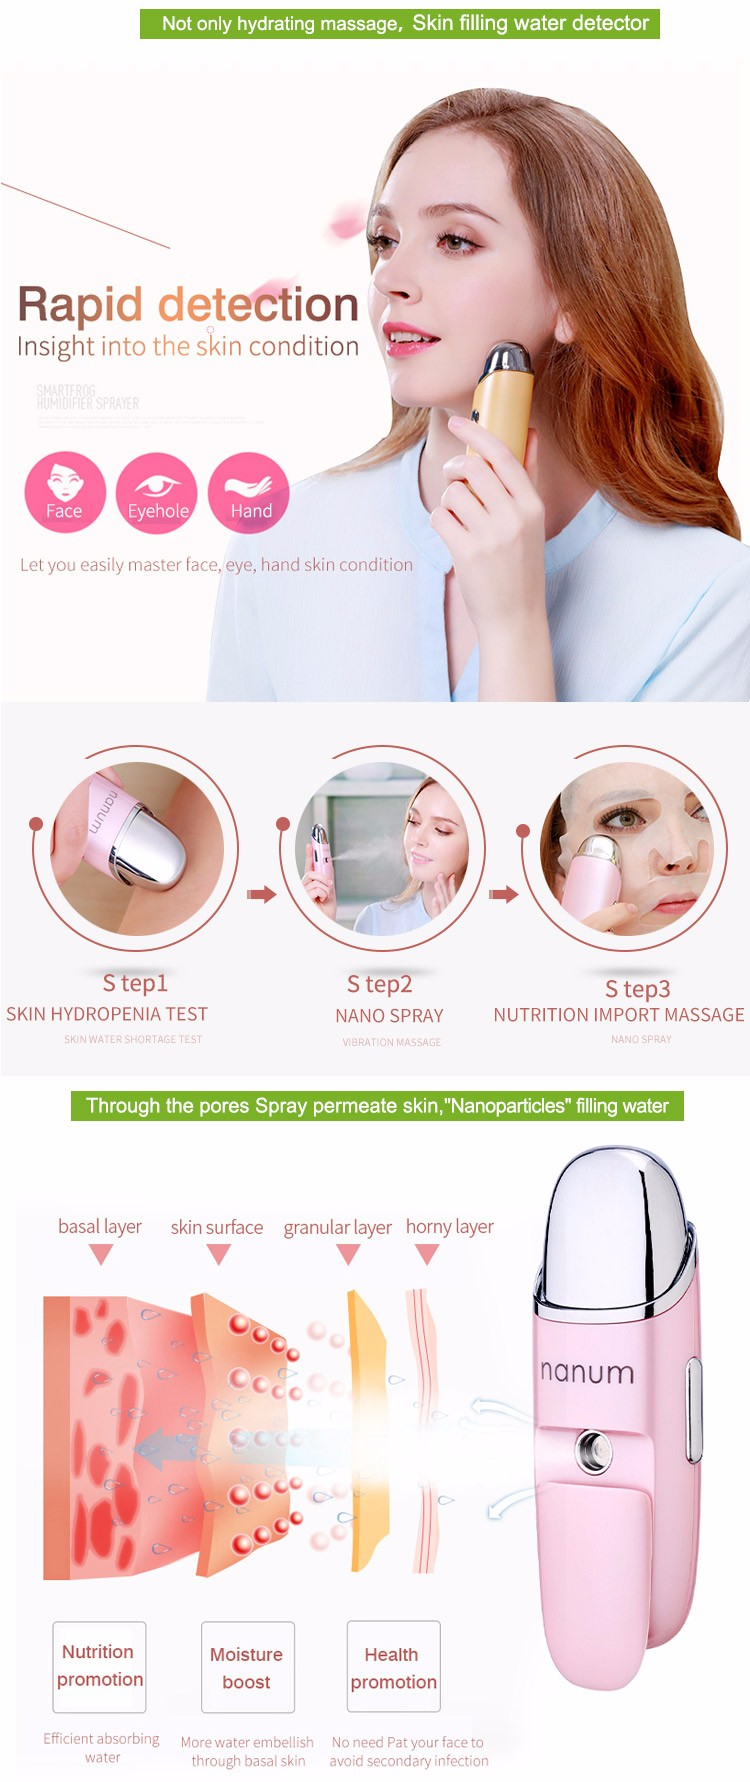 Facial Steamer Nutrition Promotion Portable Mini Skin Care Beauty Equipment